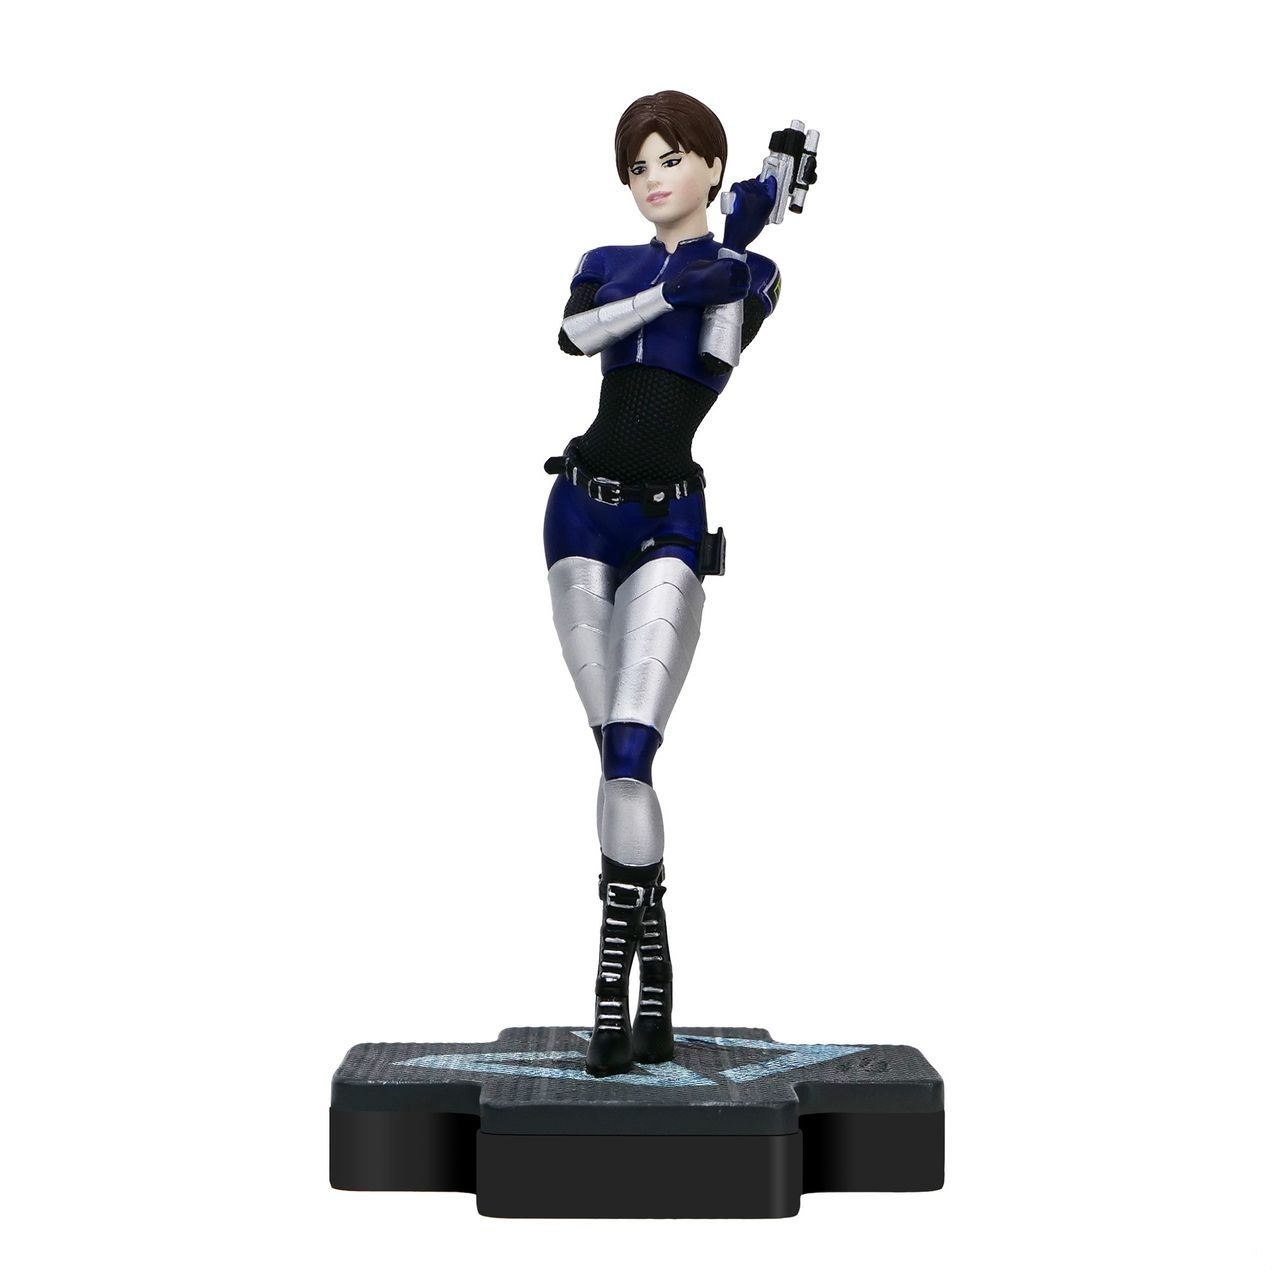 Joanna Dark, from Perfect Dark, you will have your figure of Totaku